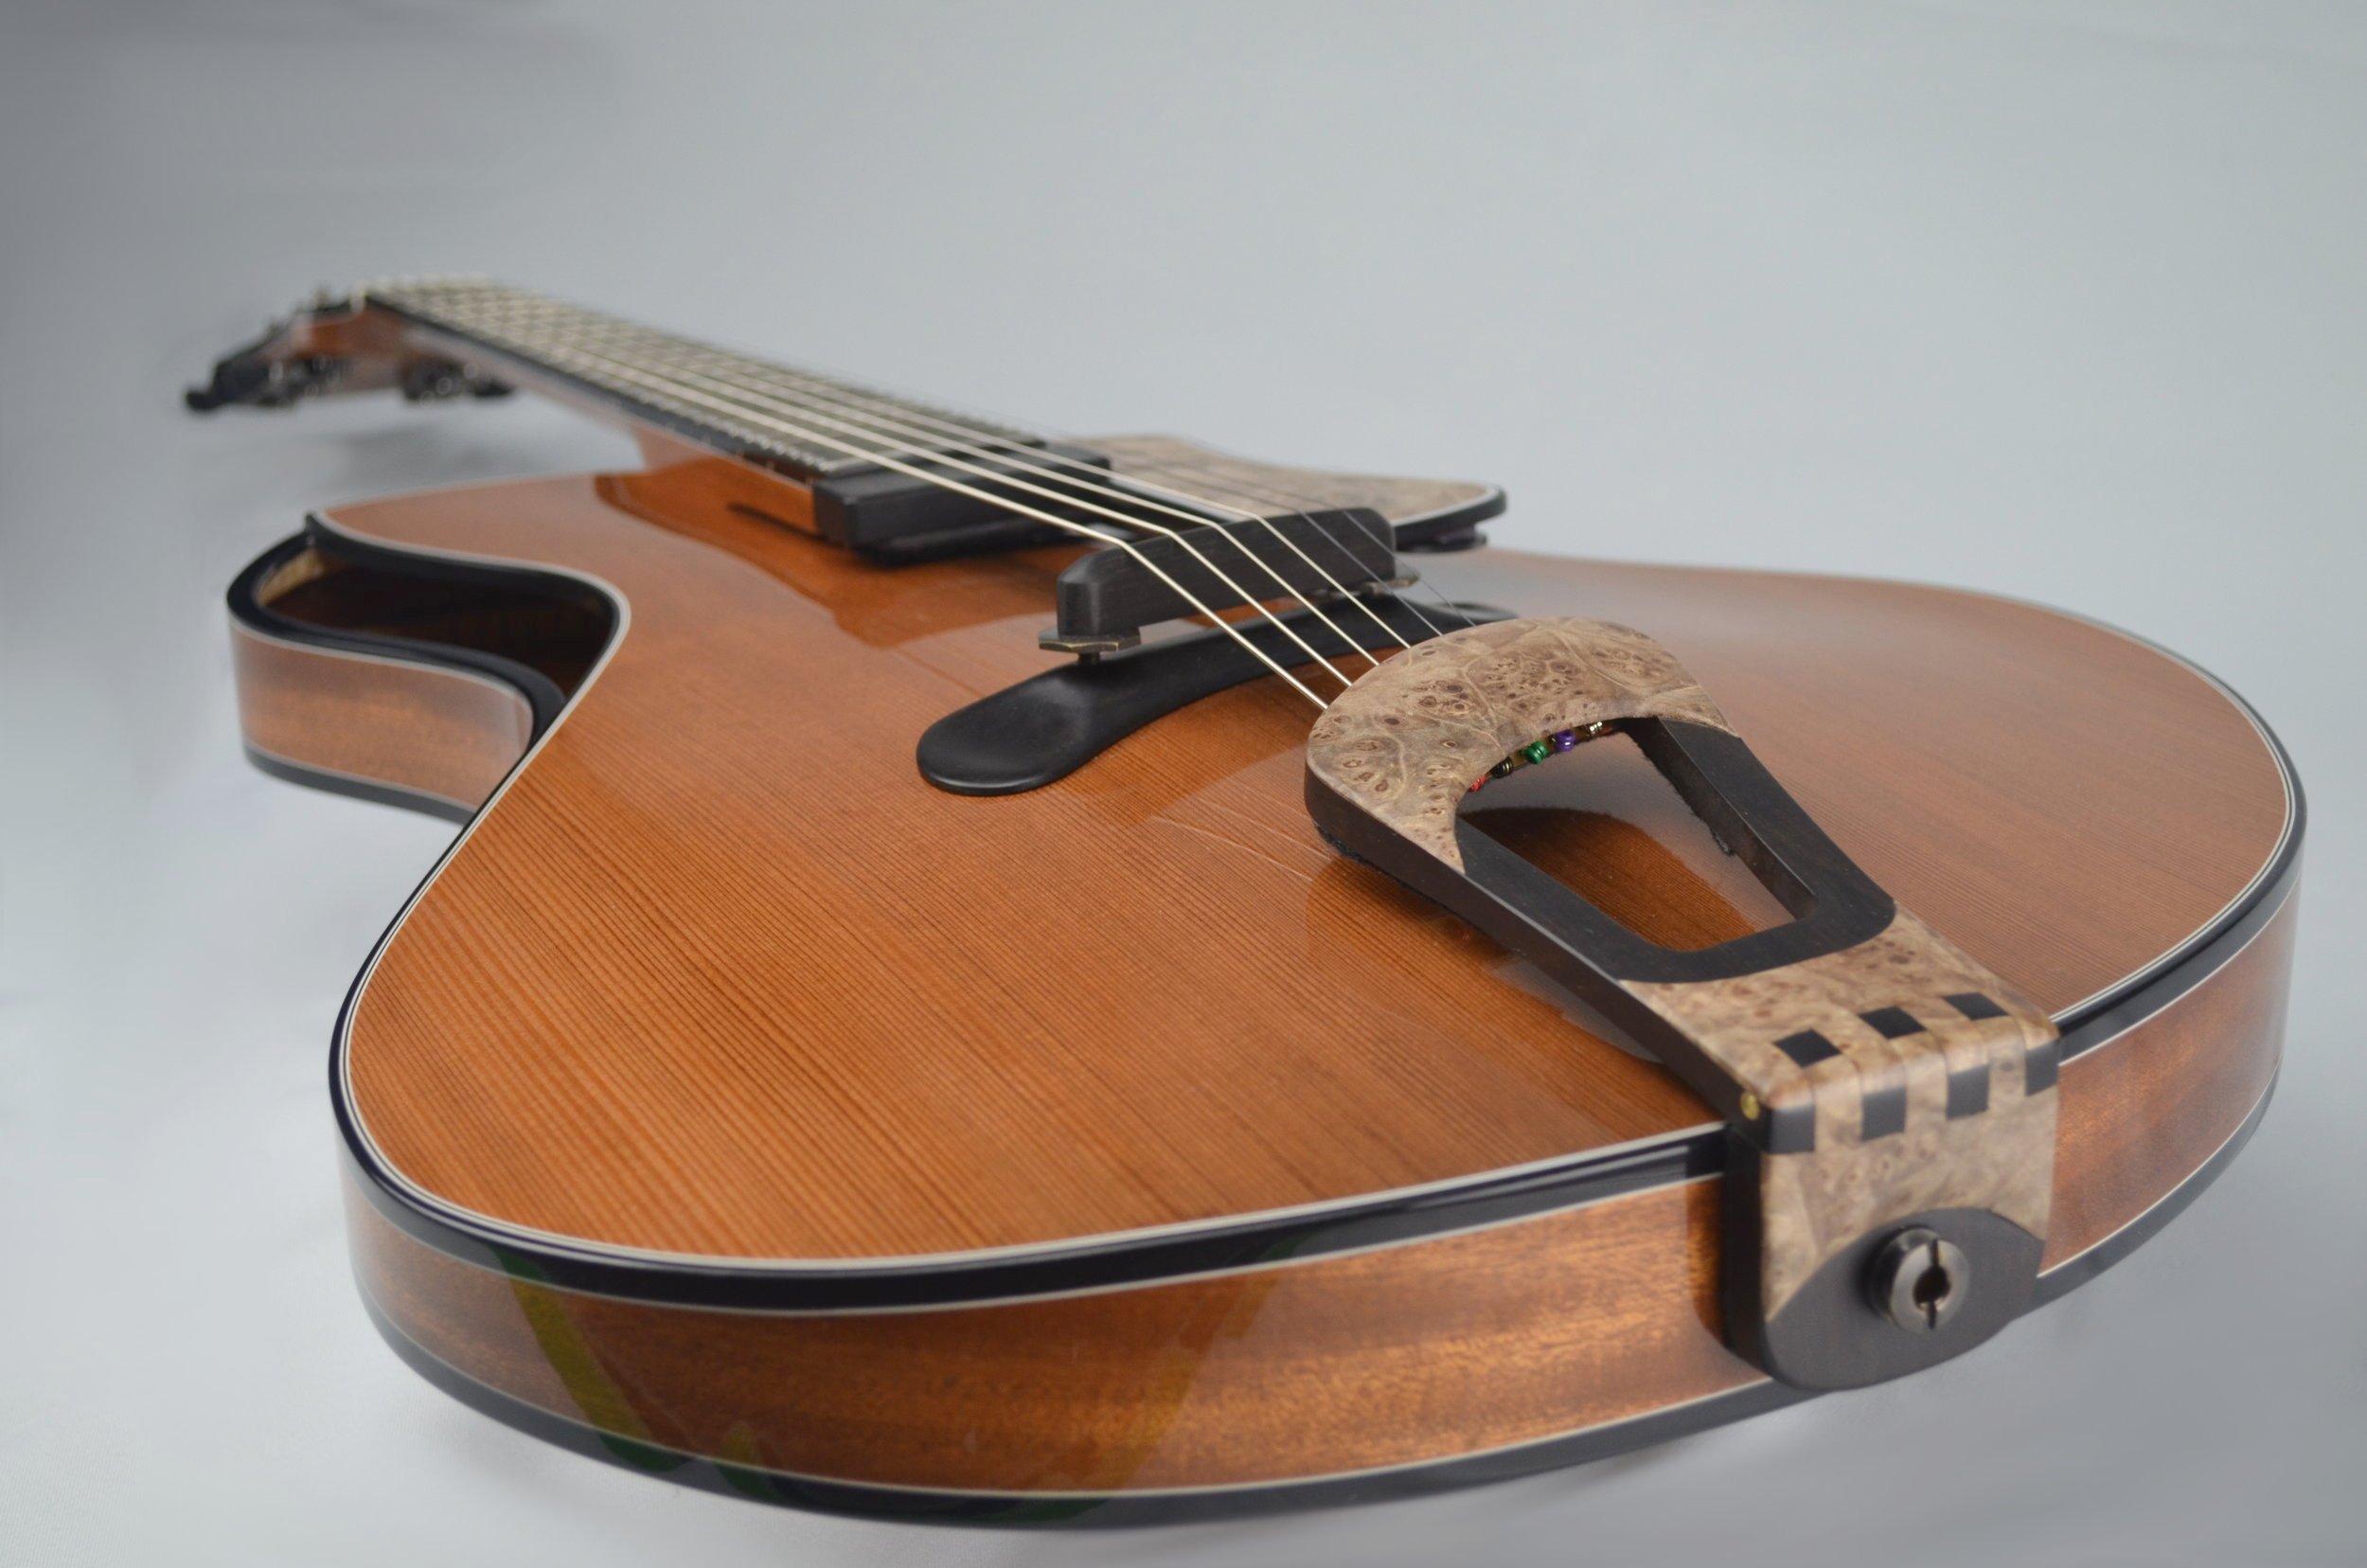 Redwood and Sapele thinline displays the flowing lines of the arm bevel and soundhole